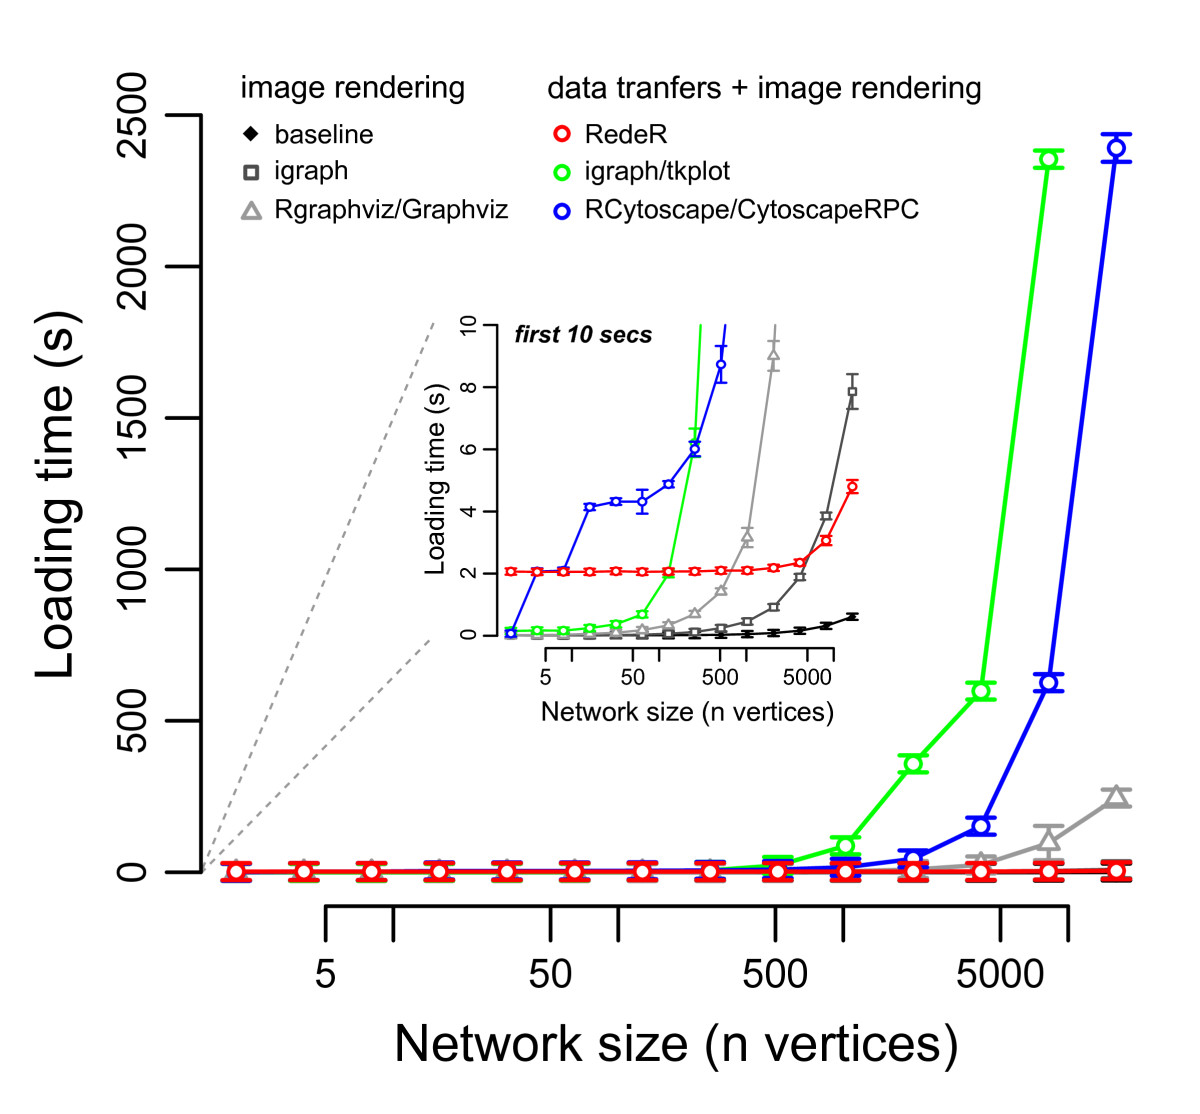 https://static-content.springer.com/image/art%3A10.1186%2Fgb-2012-13-4-r29/MediaObjects/13059_2012_Article_2853_Fig7_HTML.jpg